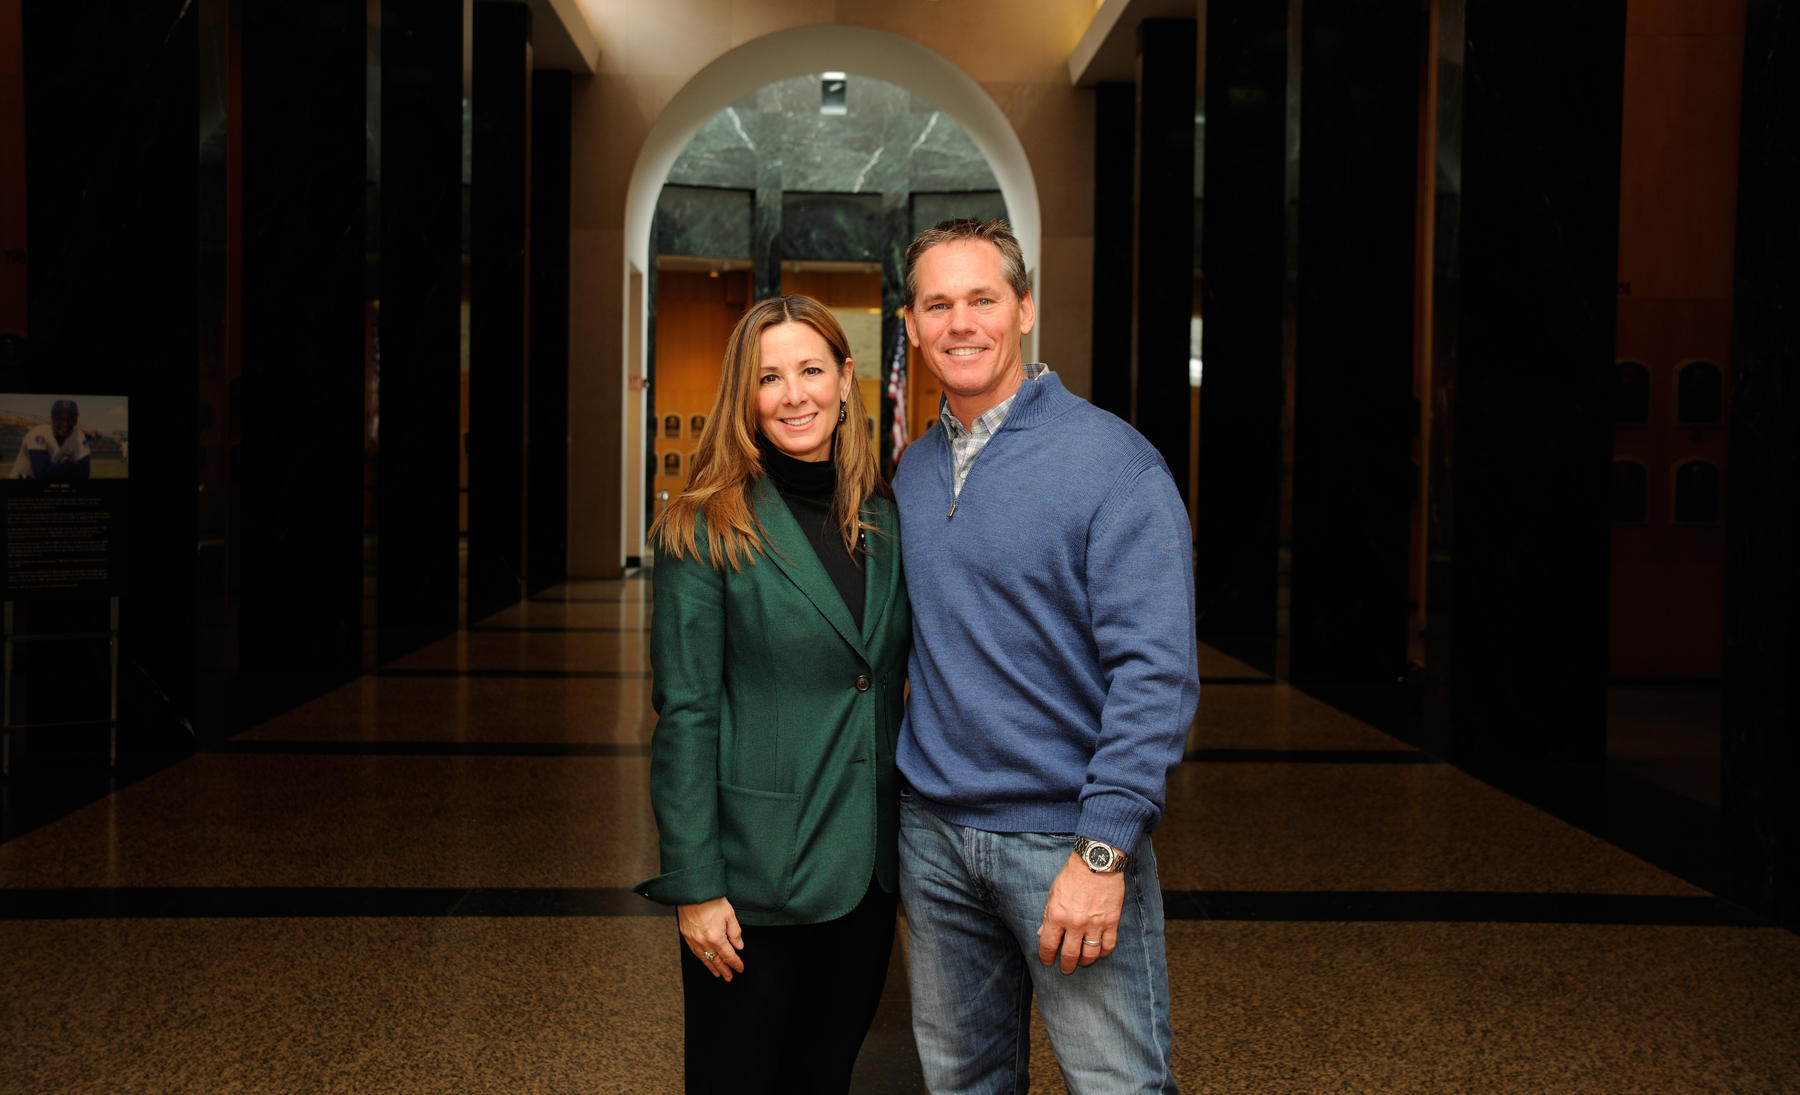 Craig and Patty Biggio pause for a moment in the Hall of Fame's Plaque Gallery during Craig Biggio's Hall of Fame Orientation Visit on Friday, Jan. 30 in Cooperstown. (Milo Stewart Jr./National Baseball Hall of Fame)